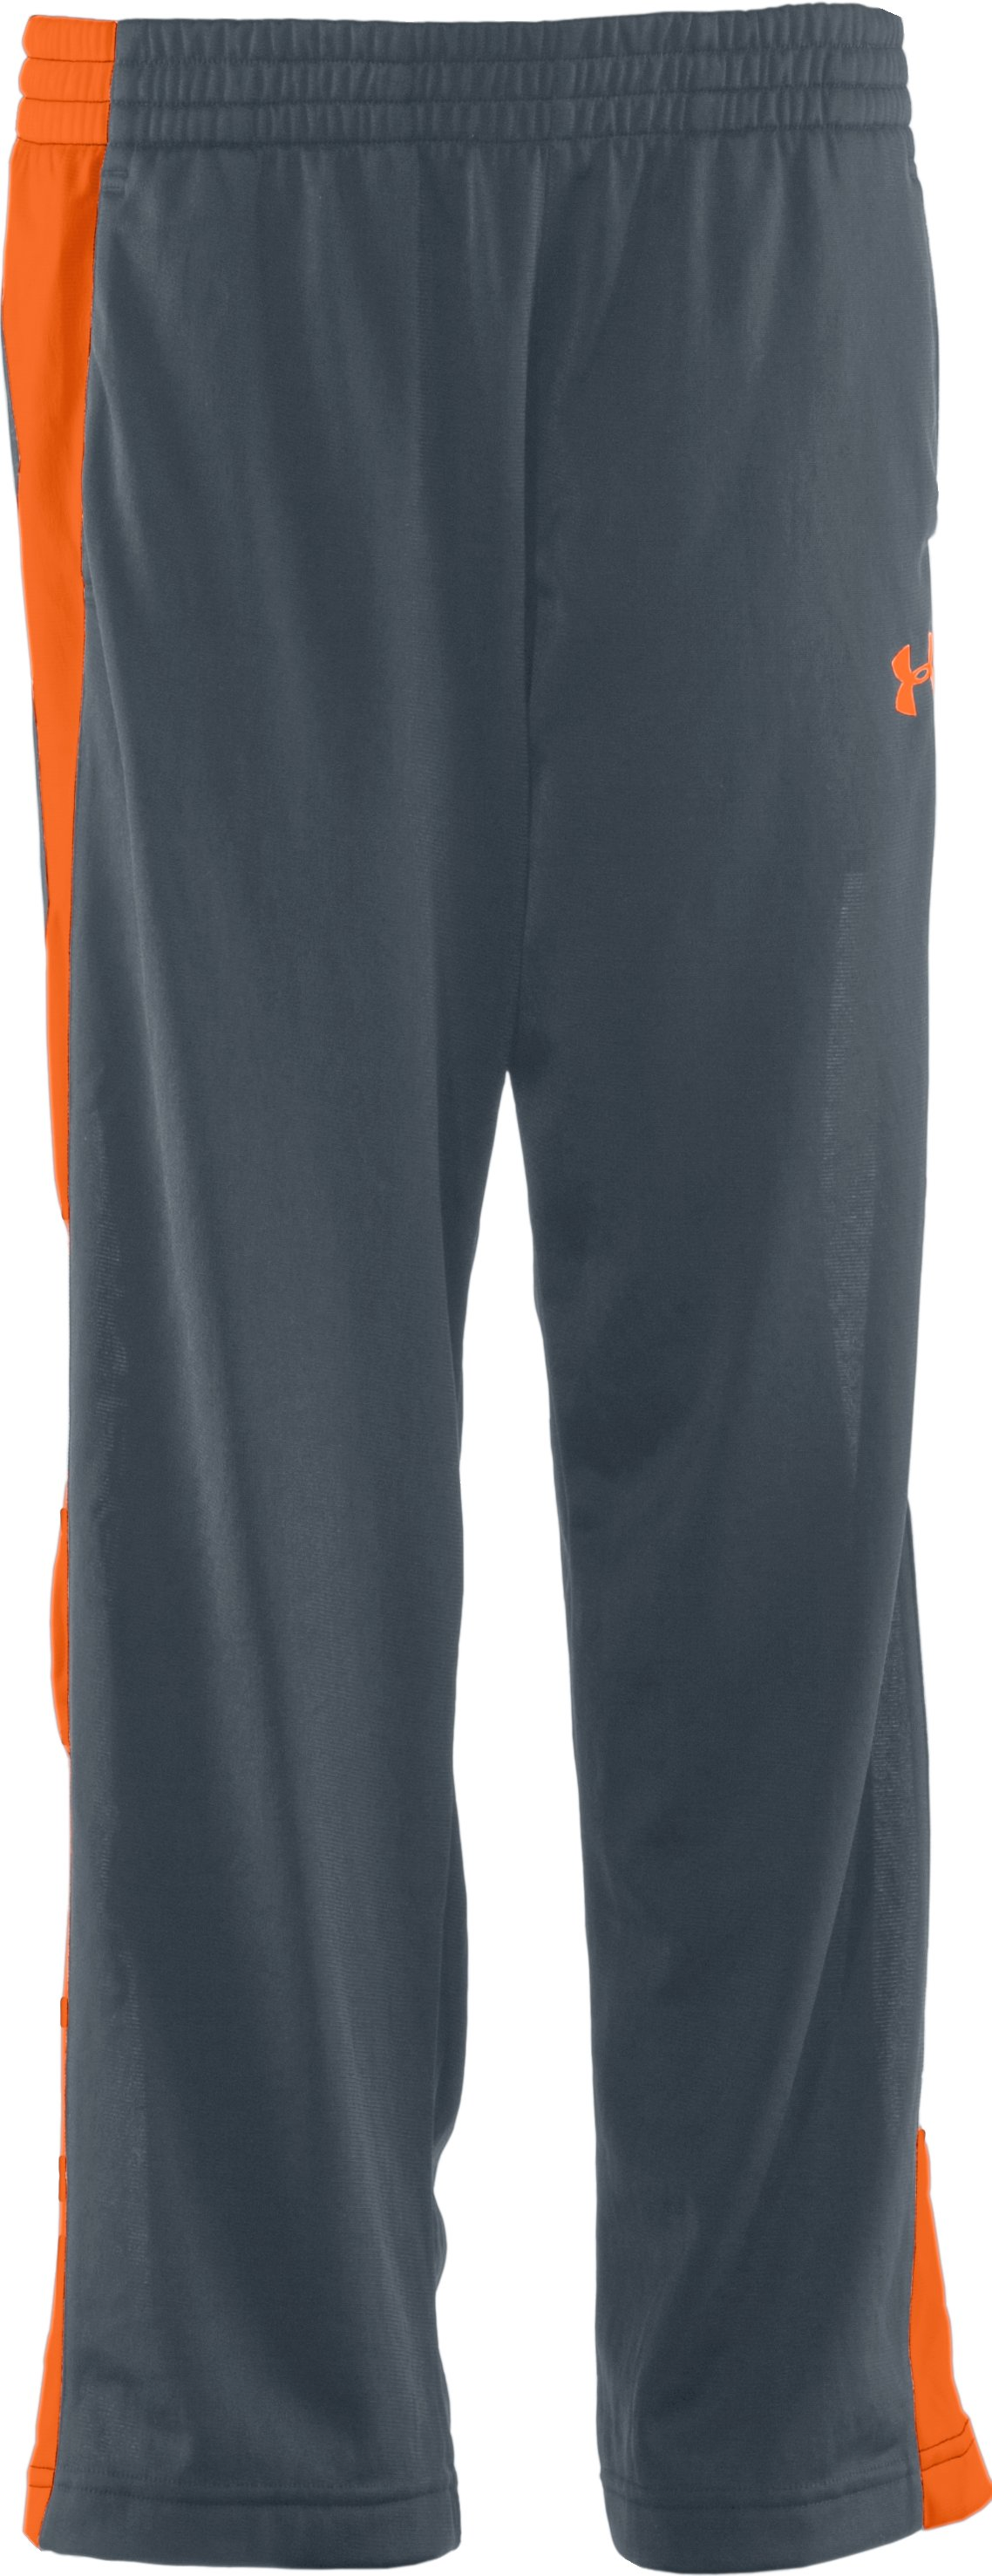 Boys' UA Brawler Knit Warm-Up Pants, Charcoal, undefined